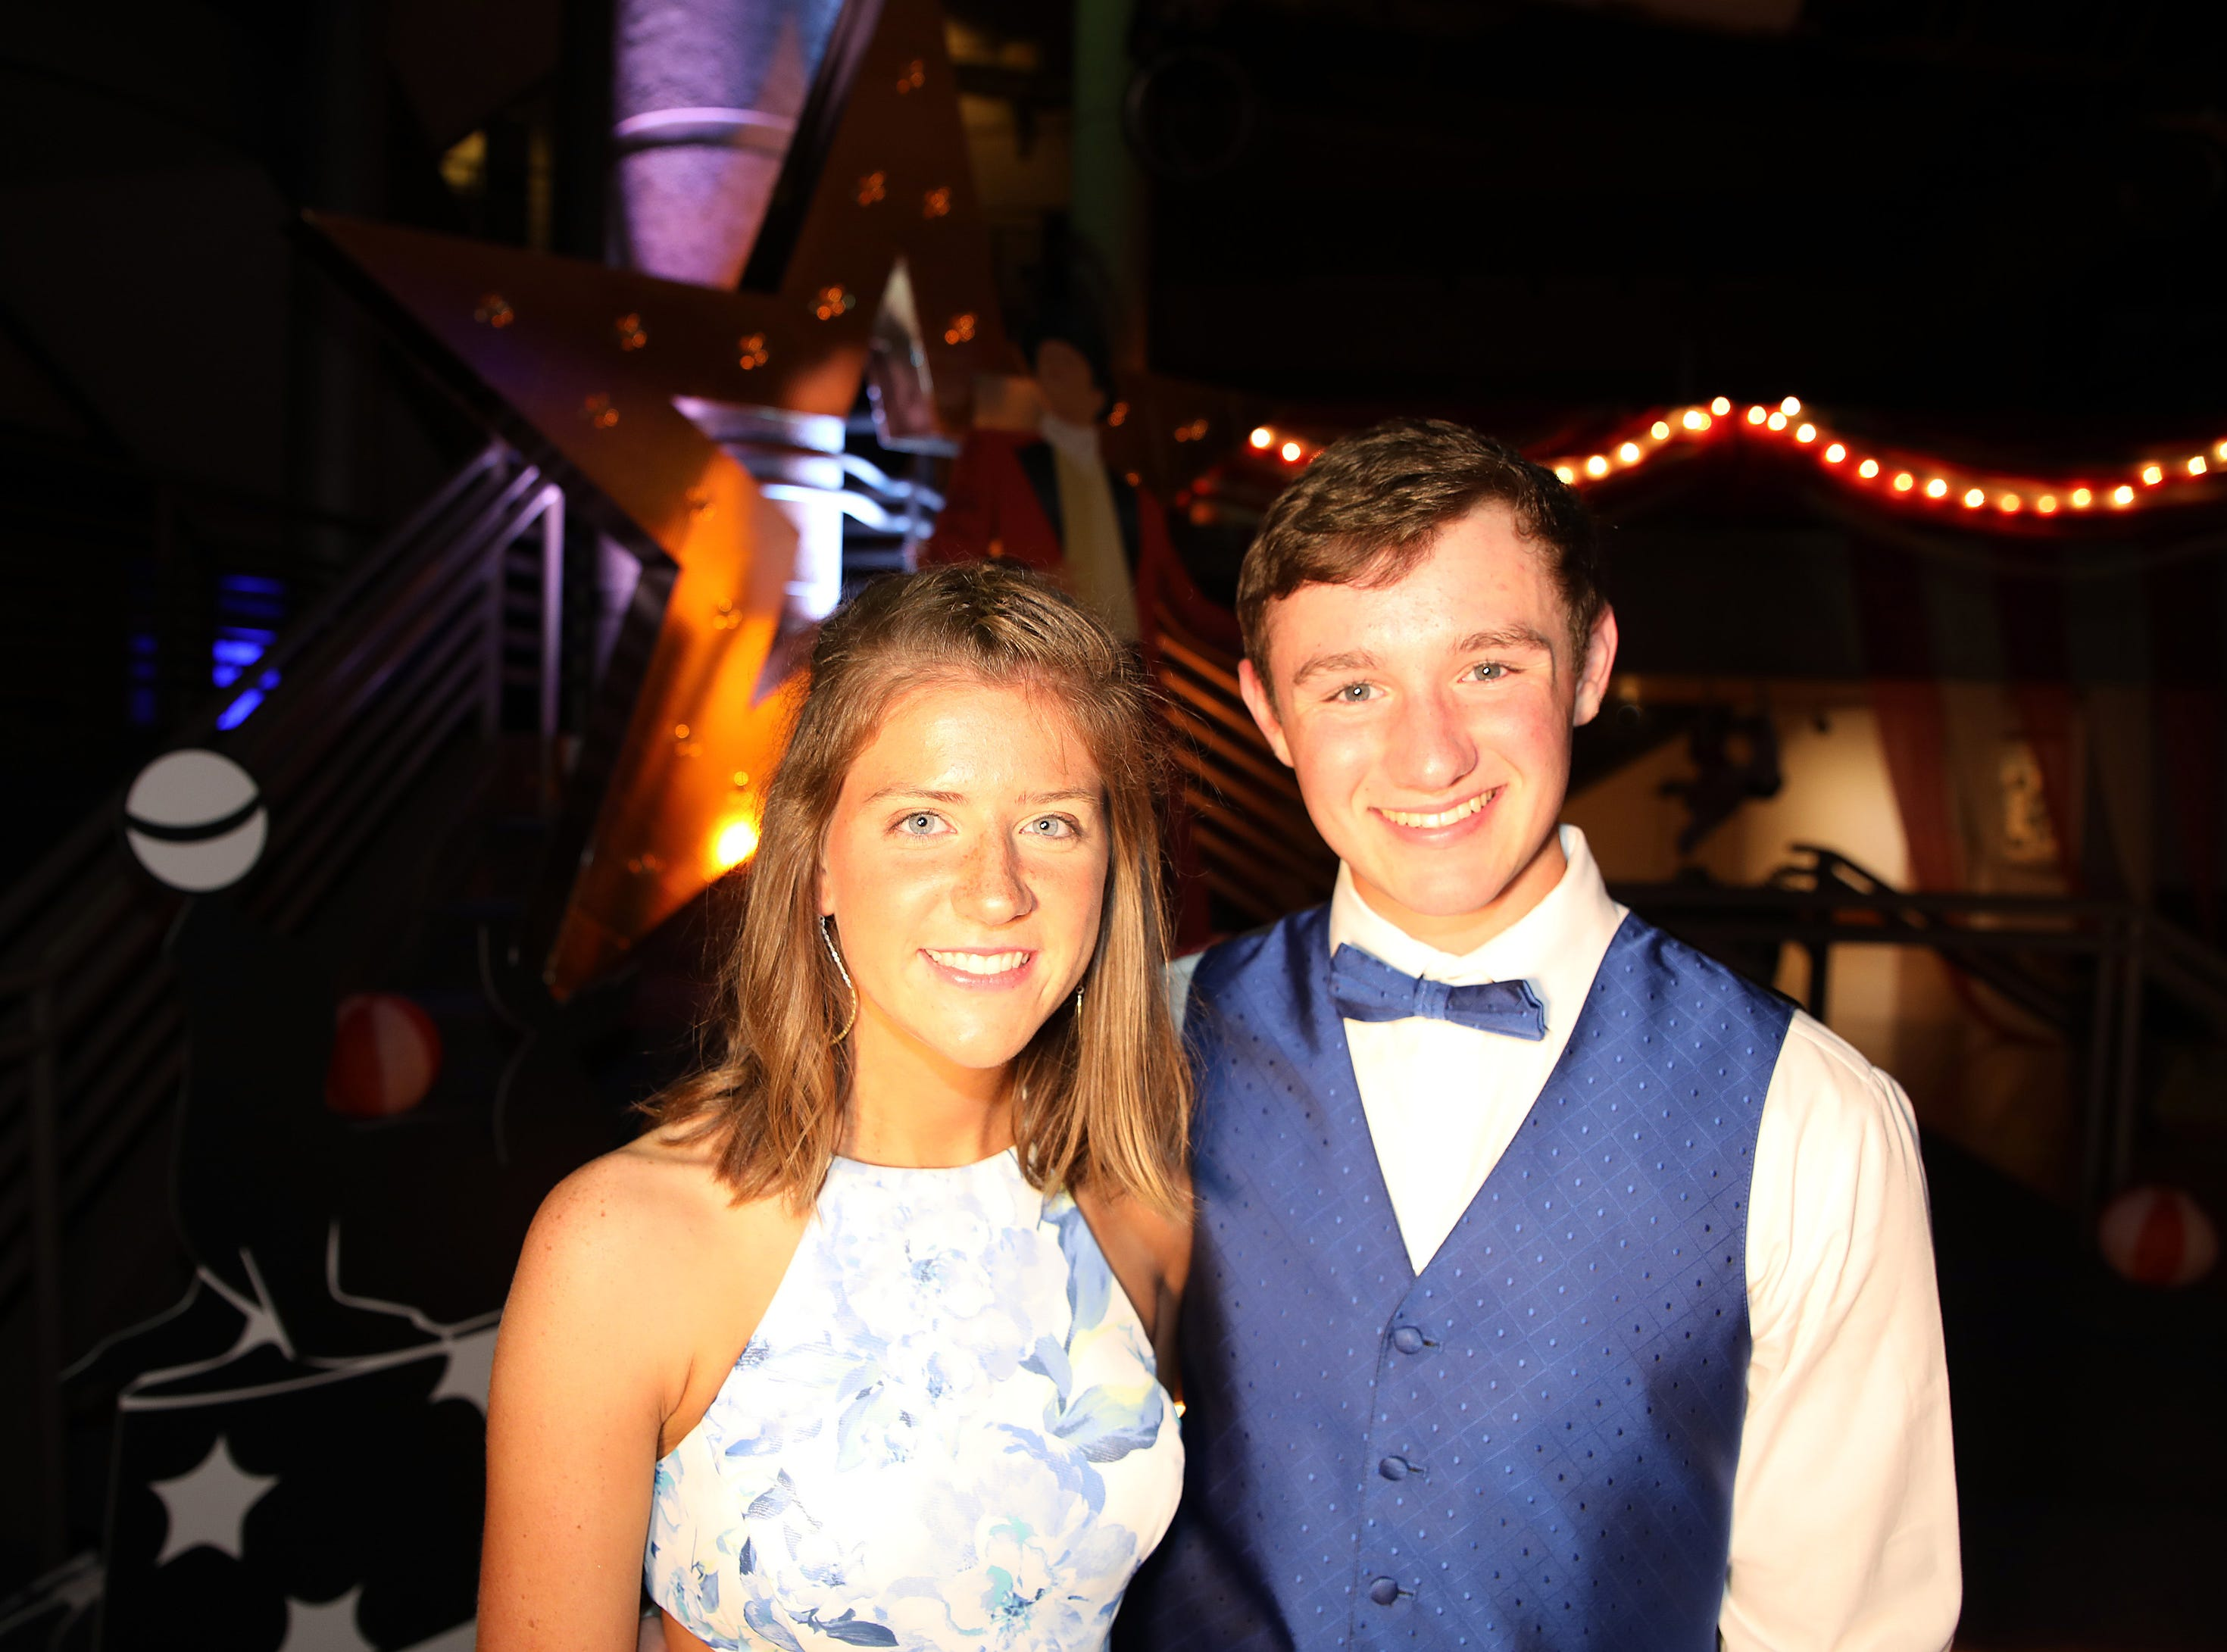 Seniors Kate Meade and Alex Augustine attend the circus-themed Urbandale High School Junior/Senior Prom Spectacular at the State Historical Building in Des Moines on Saturday, April 11, 2019.  The post-prom event is held at school right after the dance from 11 p.m. to 4:30 a.m. with food, prizes, a hypnotist, inflatables, and casino games.